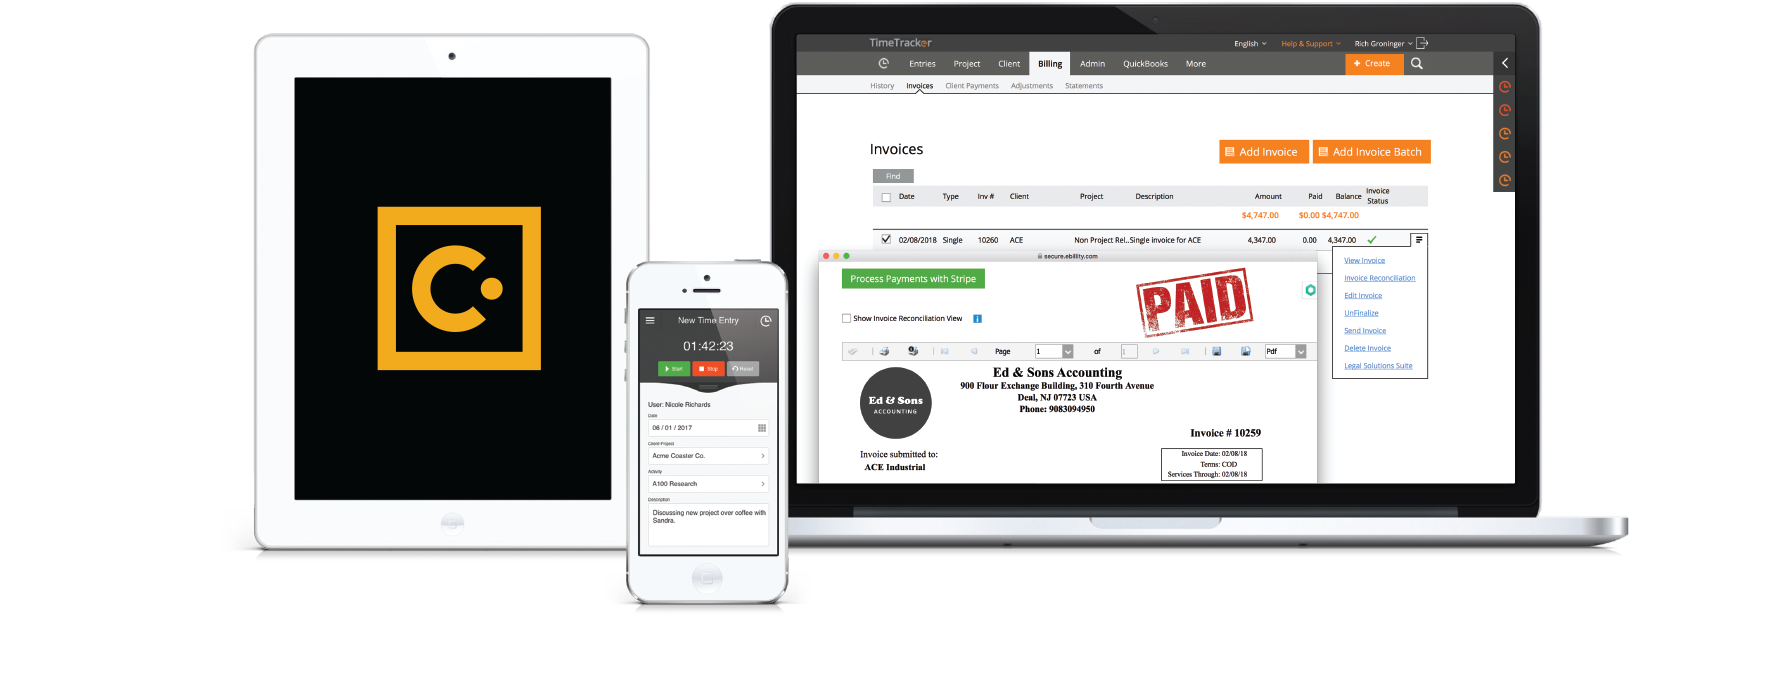 Time Tracker with Concur | Time Tracking Software | Time Tracker